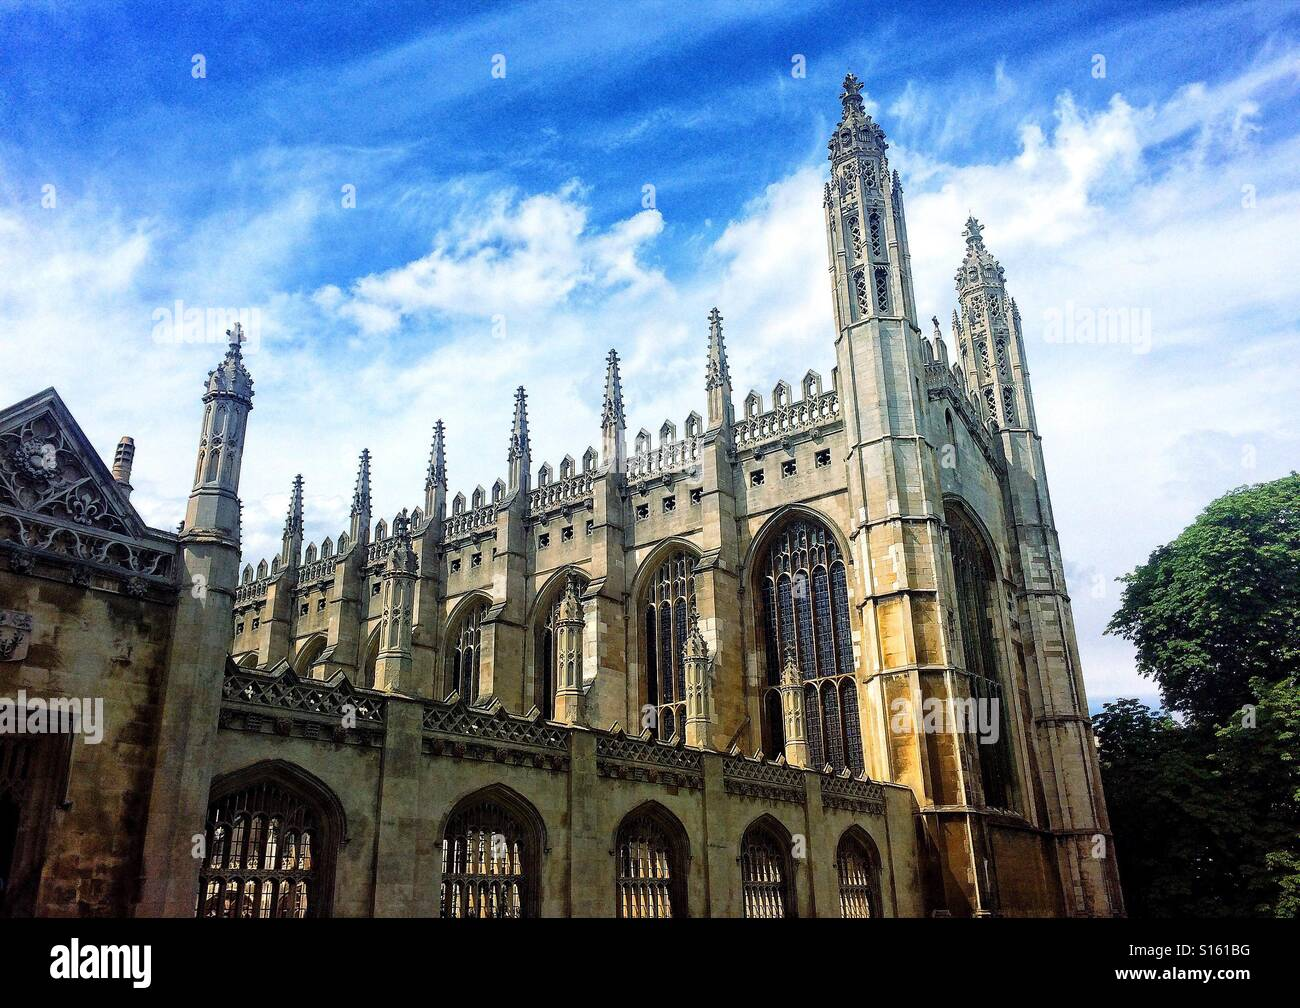 King's College Chapel, University of Cambridge, United Kingdom - Stock Image